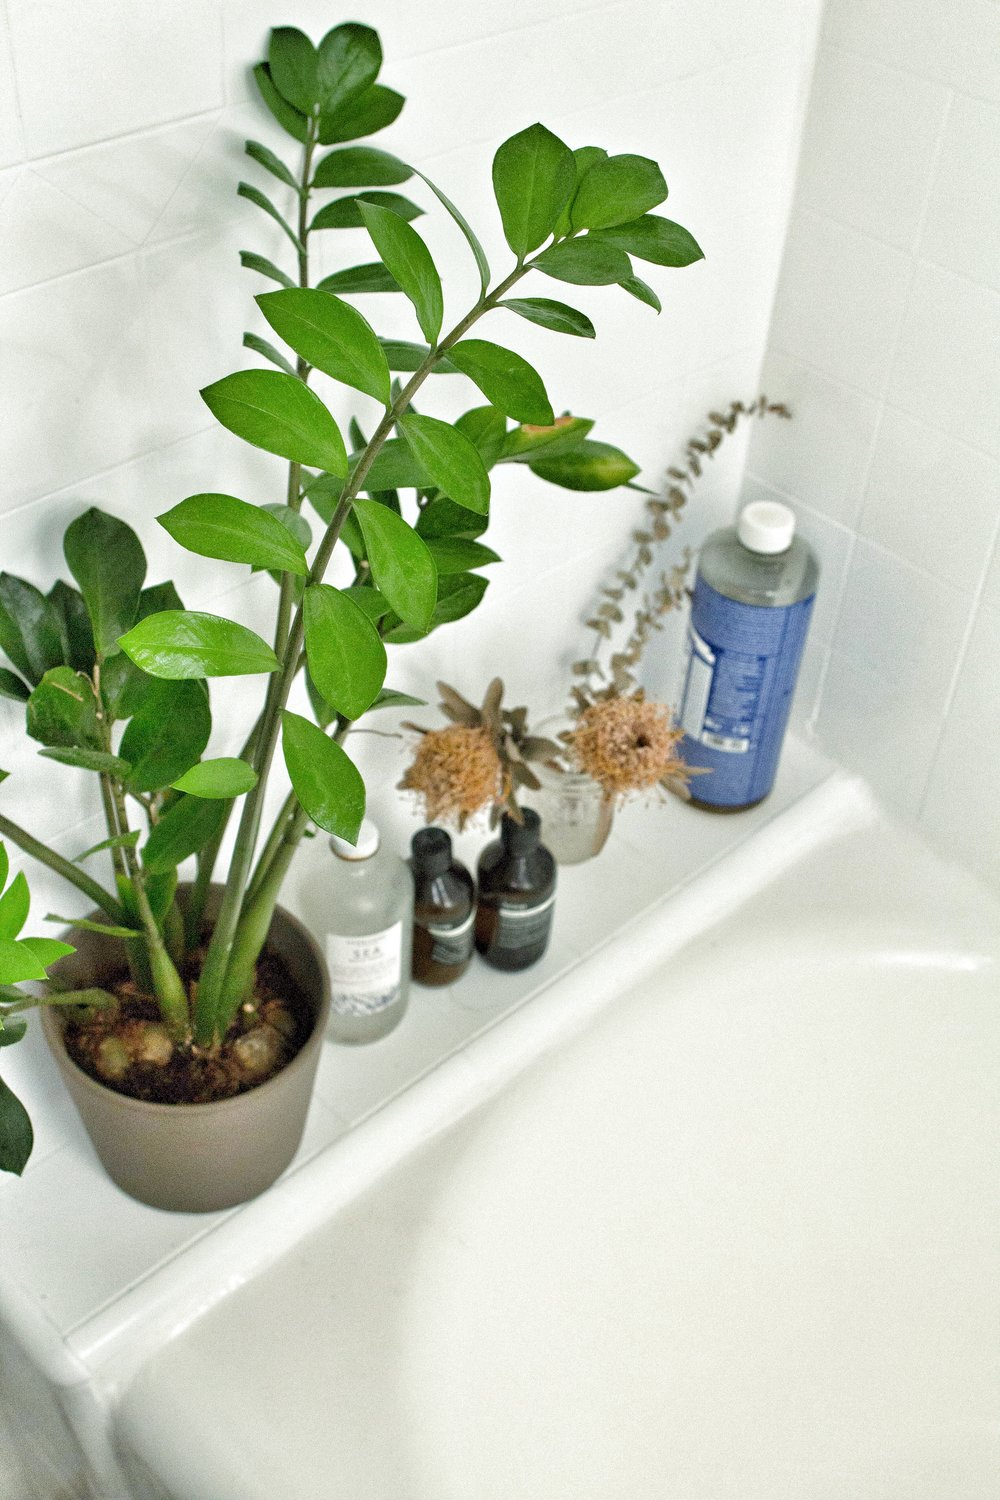 my bathtub ledge. I put all my plants and soaps here. Gotta love that big container of Dr. Bronner's!